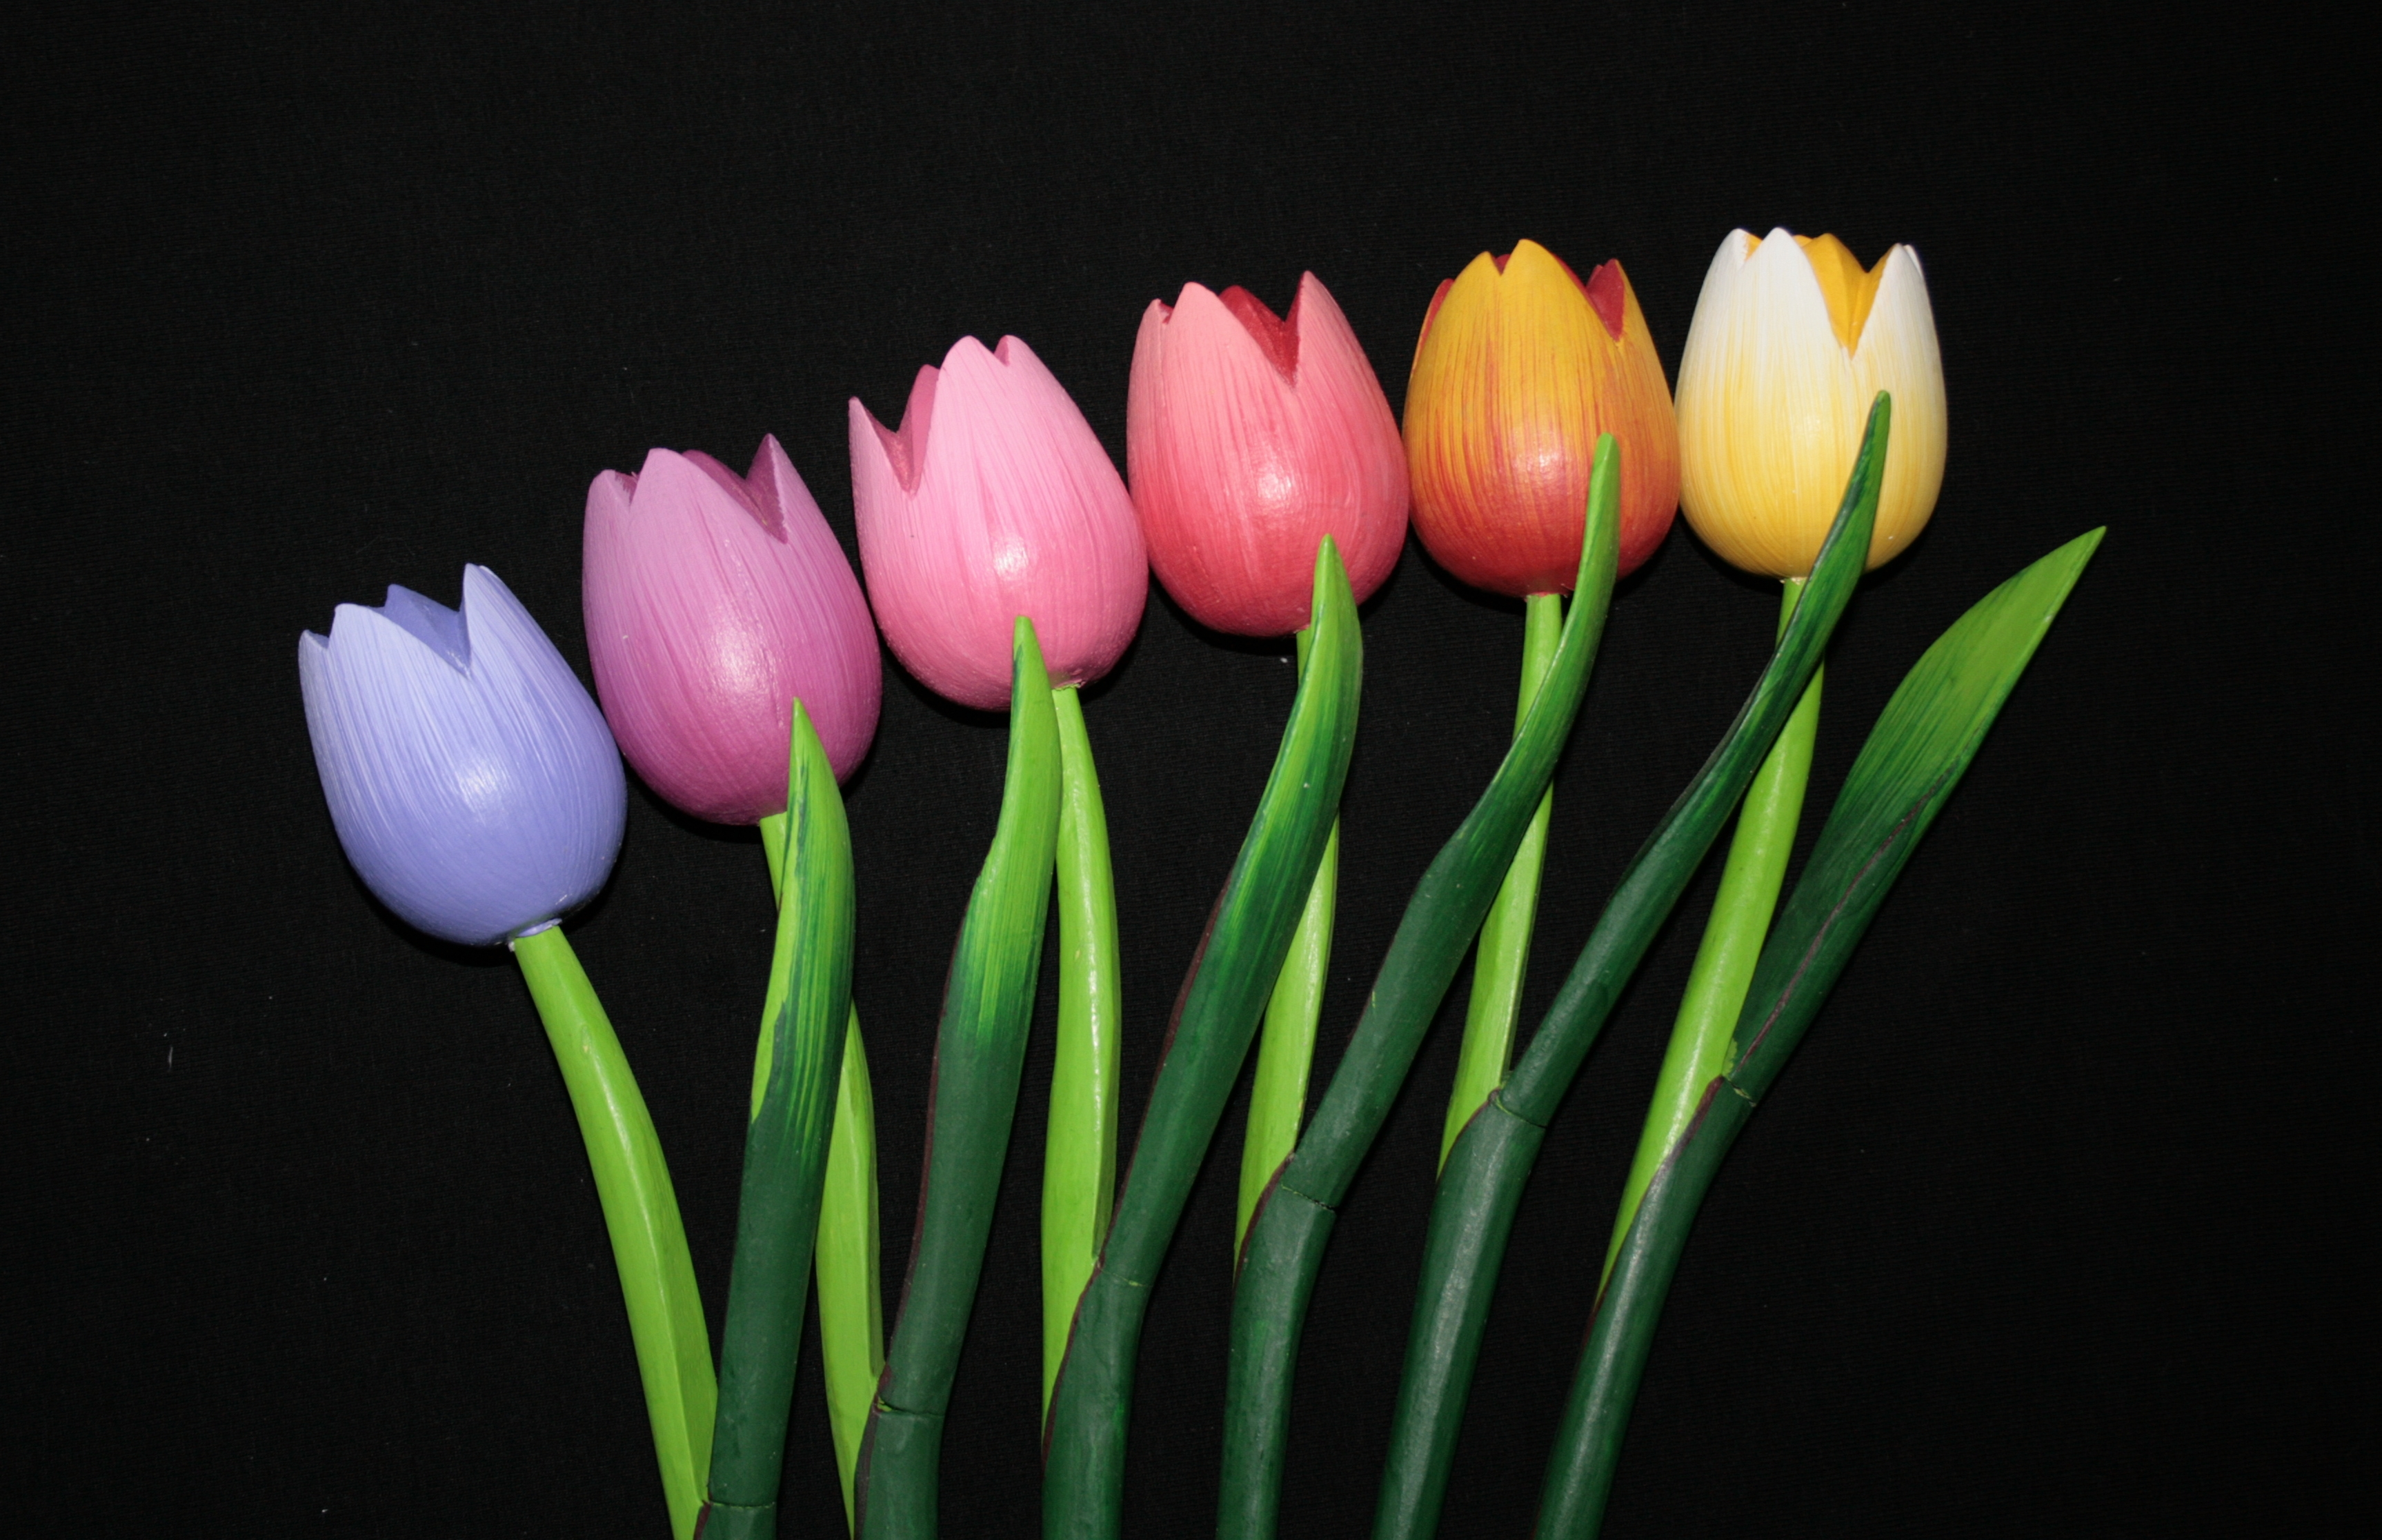 Pin tulpen on pinterest